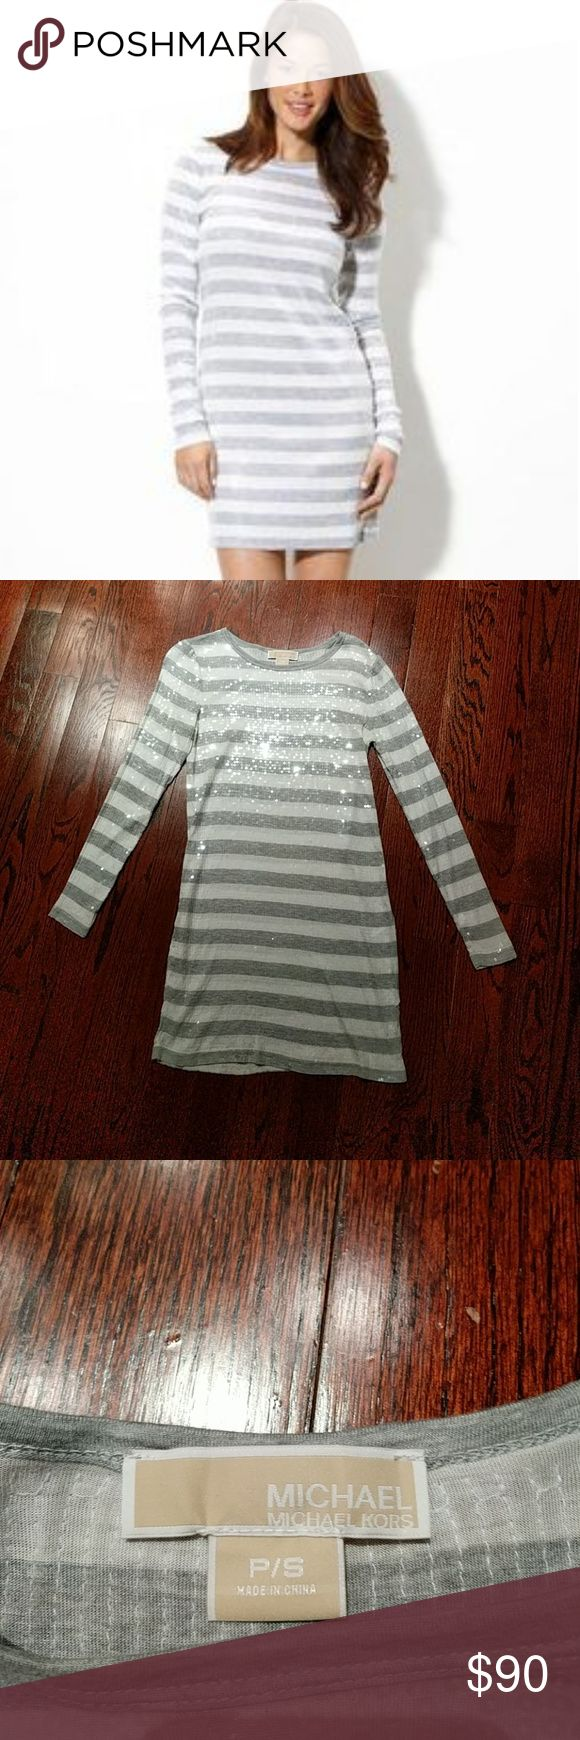 Michael Kors Grey and White Striped Sequin Dress Selling a Michael Kors sequin, long-sleeved dress that has never been worn. In excellent condition - no signs of wear or tear, all sequins intact. Michael Kors Dresses Long Sleeve